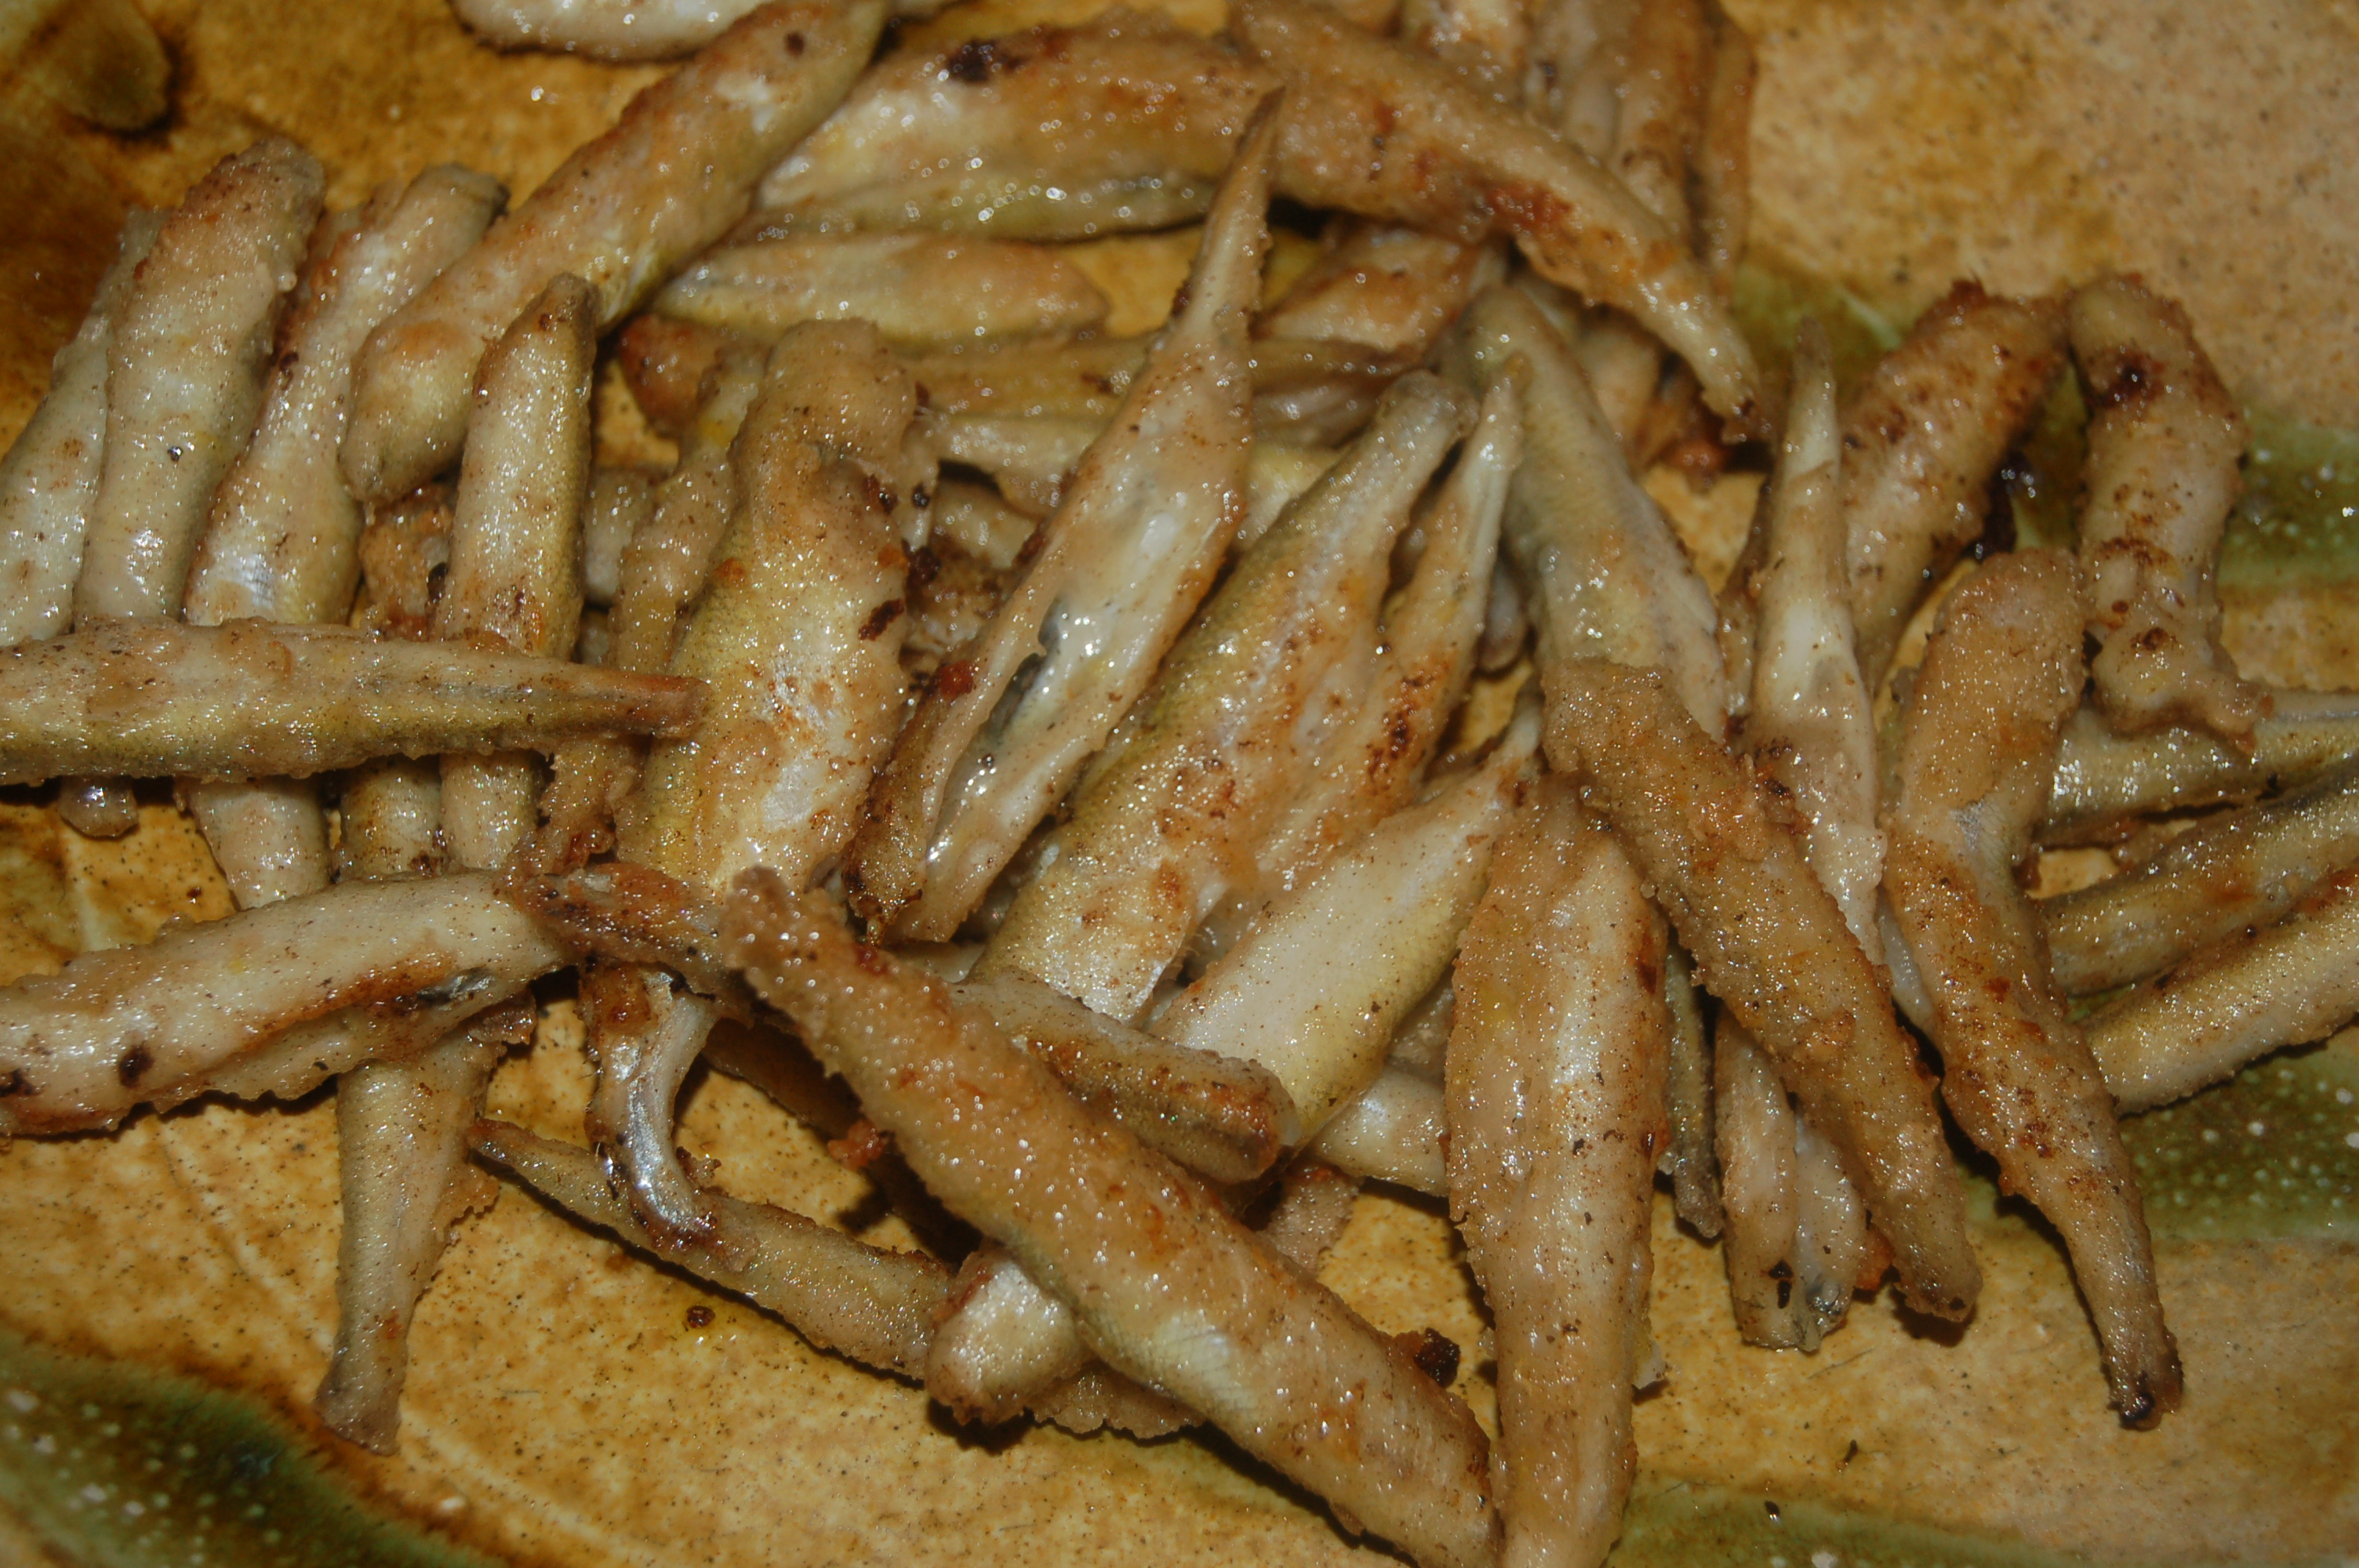 Crispy Lemon Fried Smelts with Carrot And Parsnip Fries (serves 4 ...